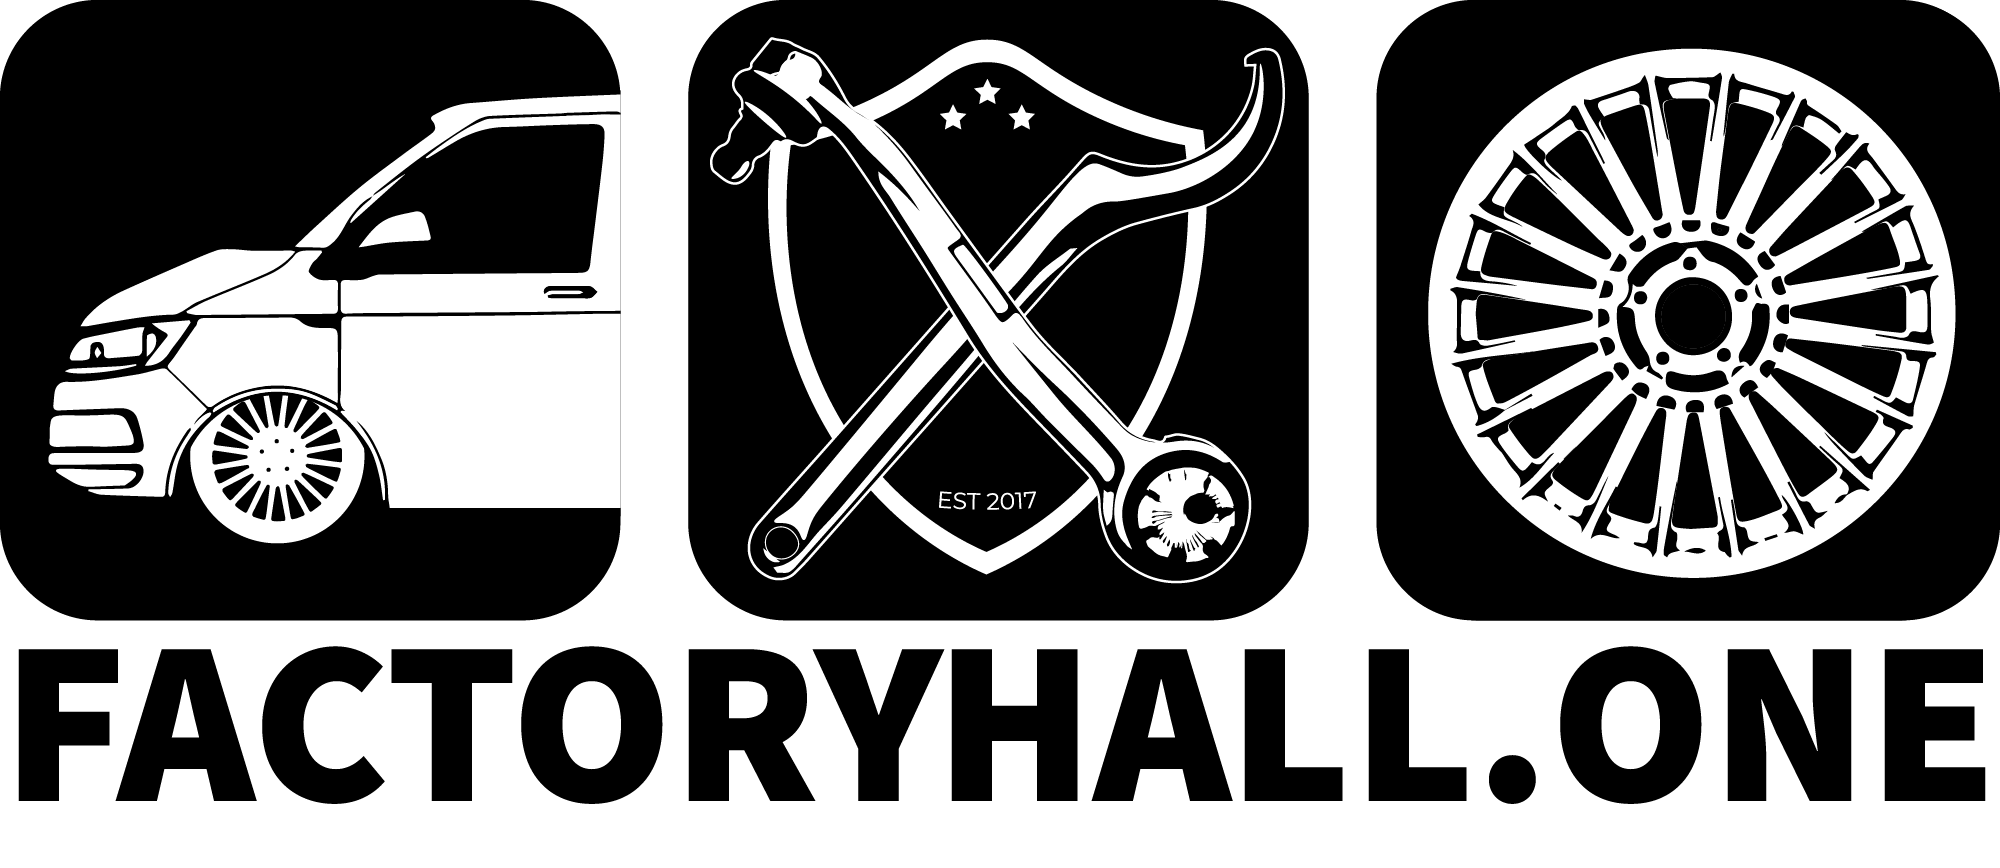 FACTORYHALL.ONE-Logo